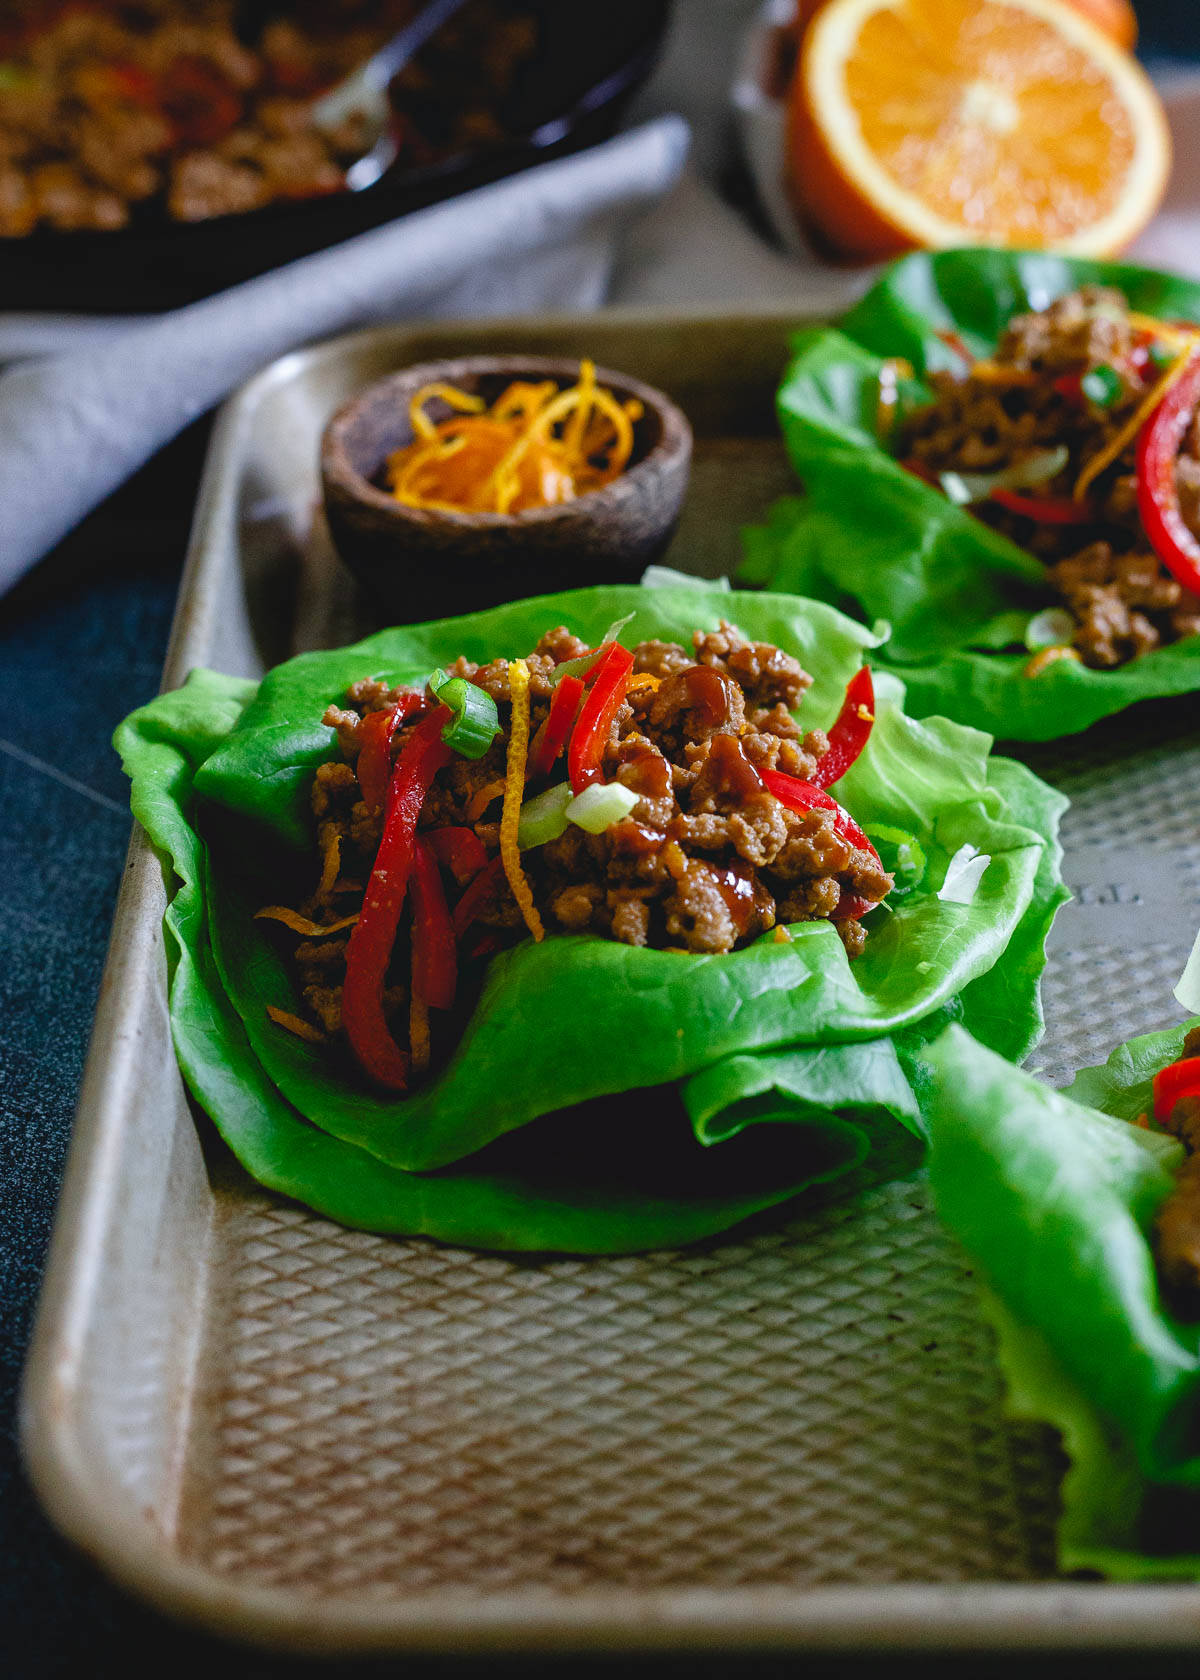 Lettuce wraps are the perfect healthy vehicle for this tasty orange turkey and make a simple, fresh meal in just 30 minutes.